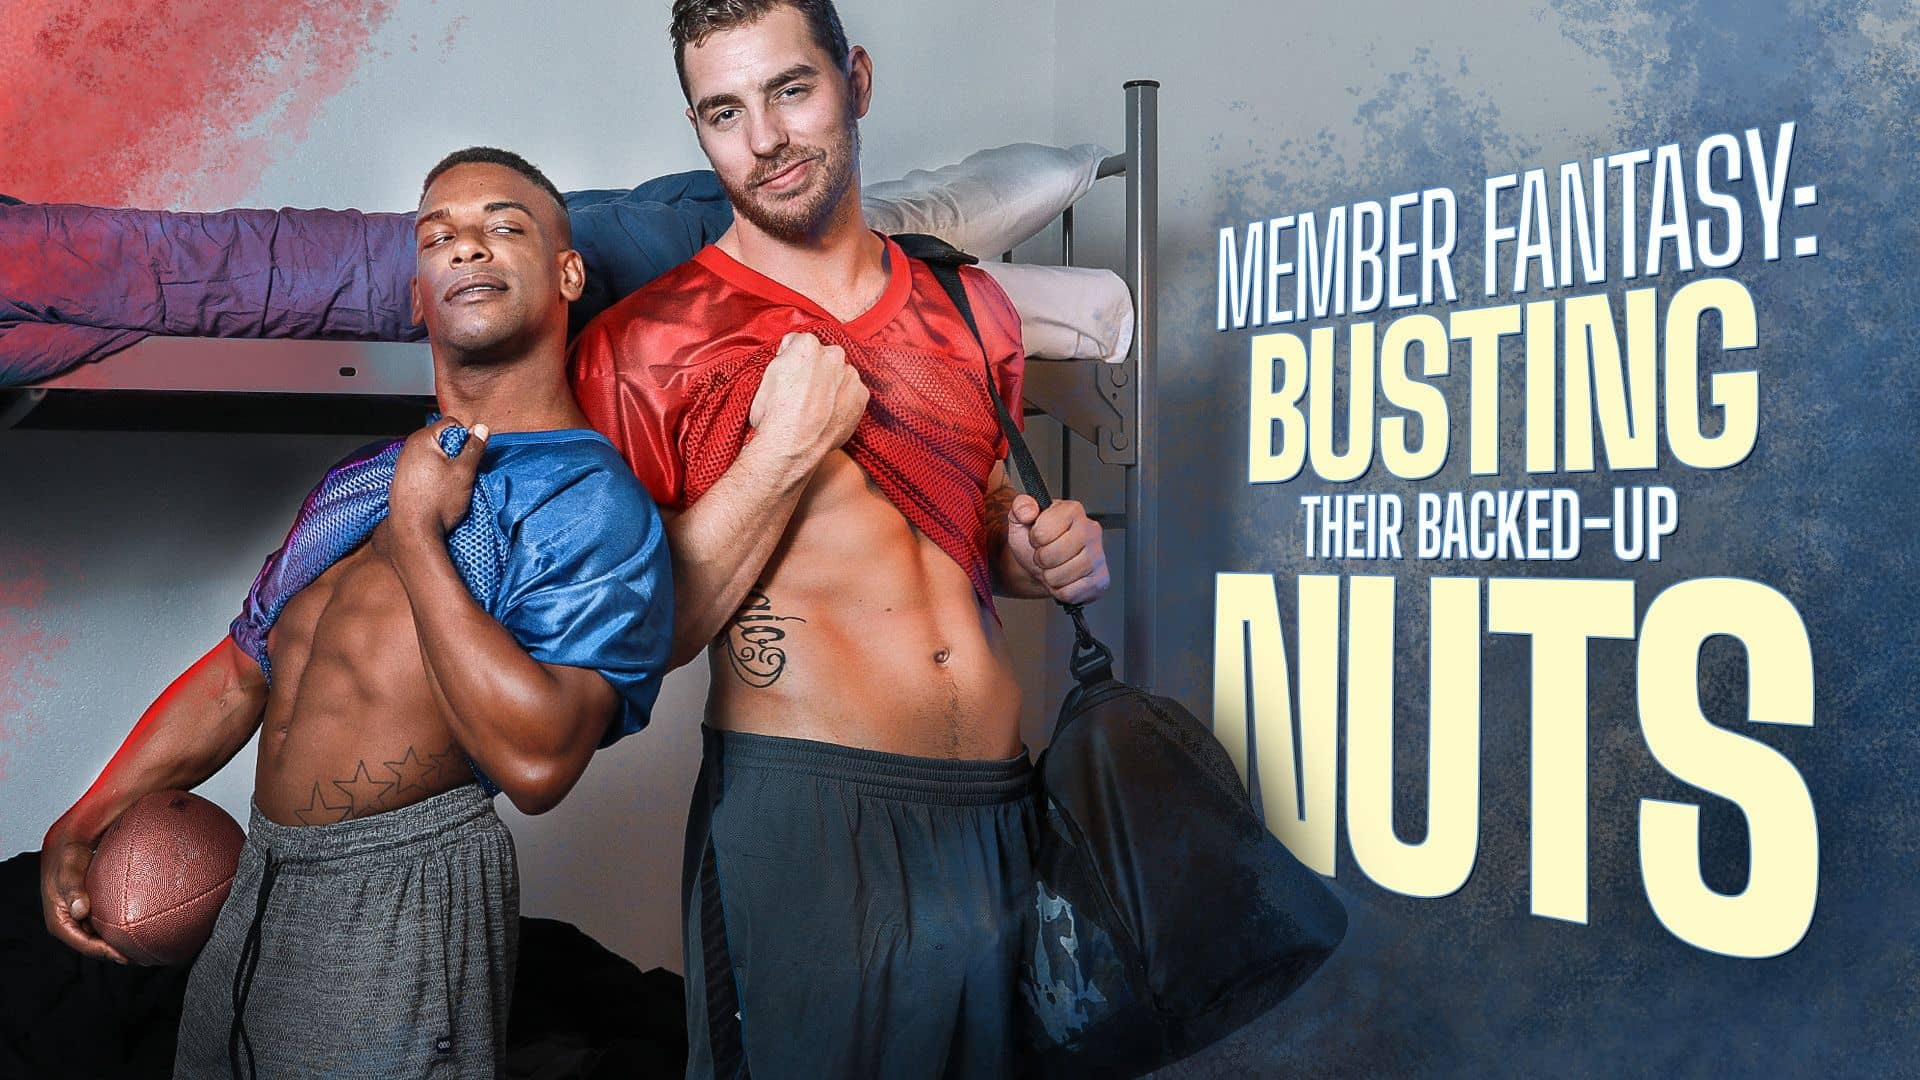 Member Fantasy, Busting Their Backed-up Nuts – Carter Woods and Adrian Hart